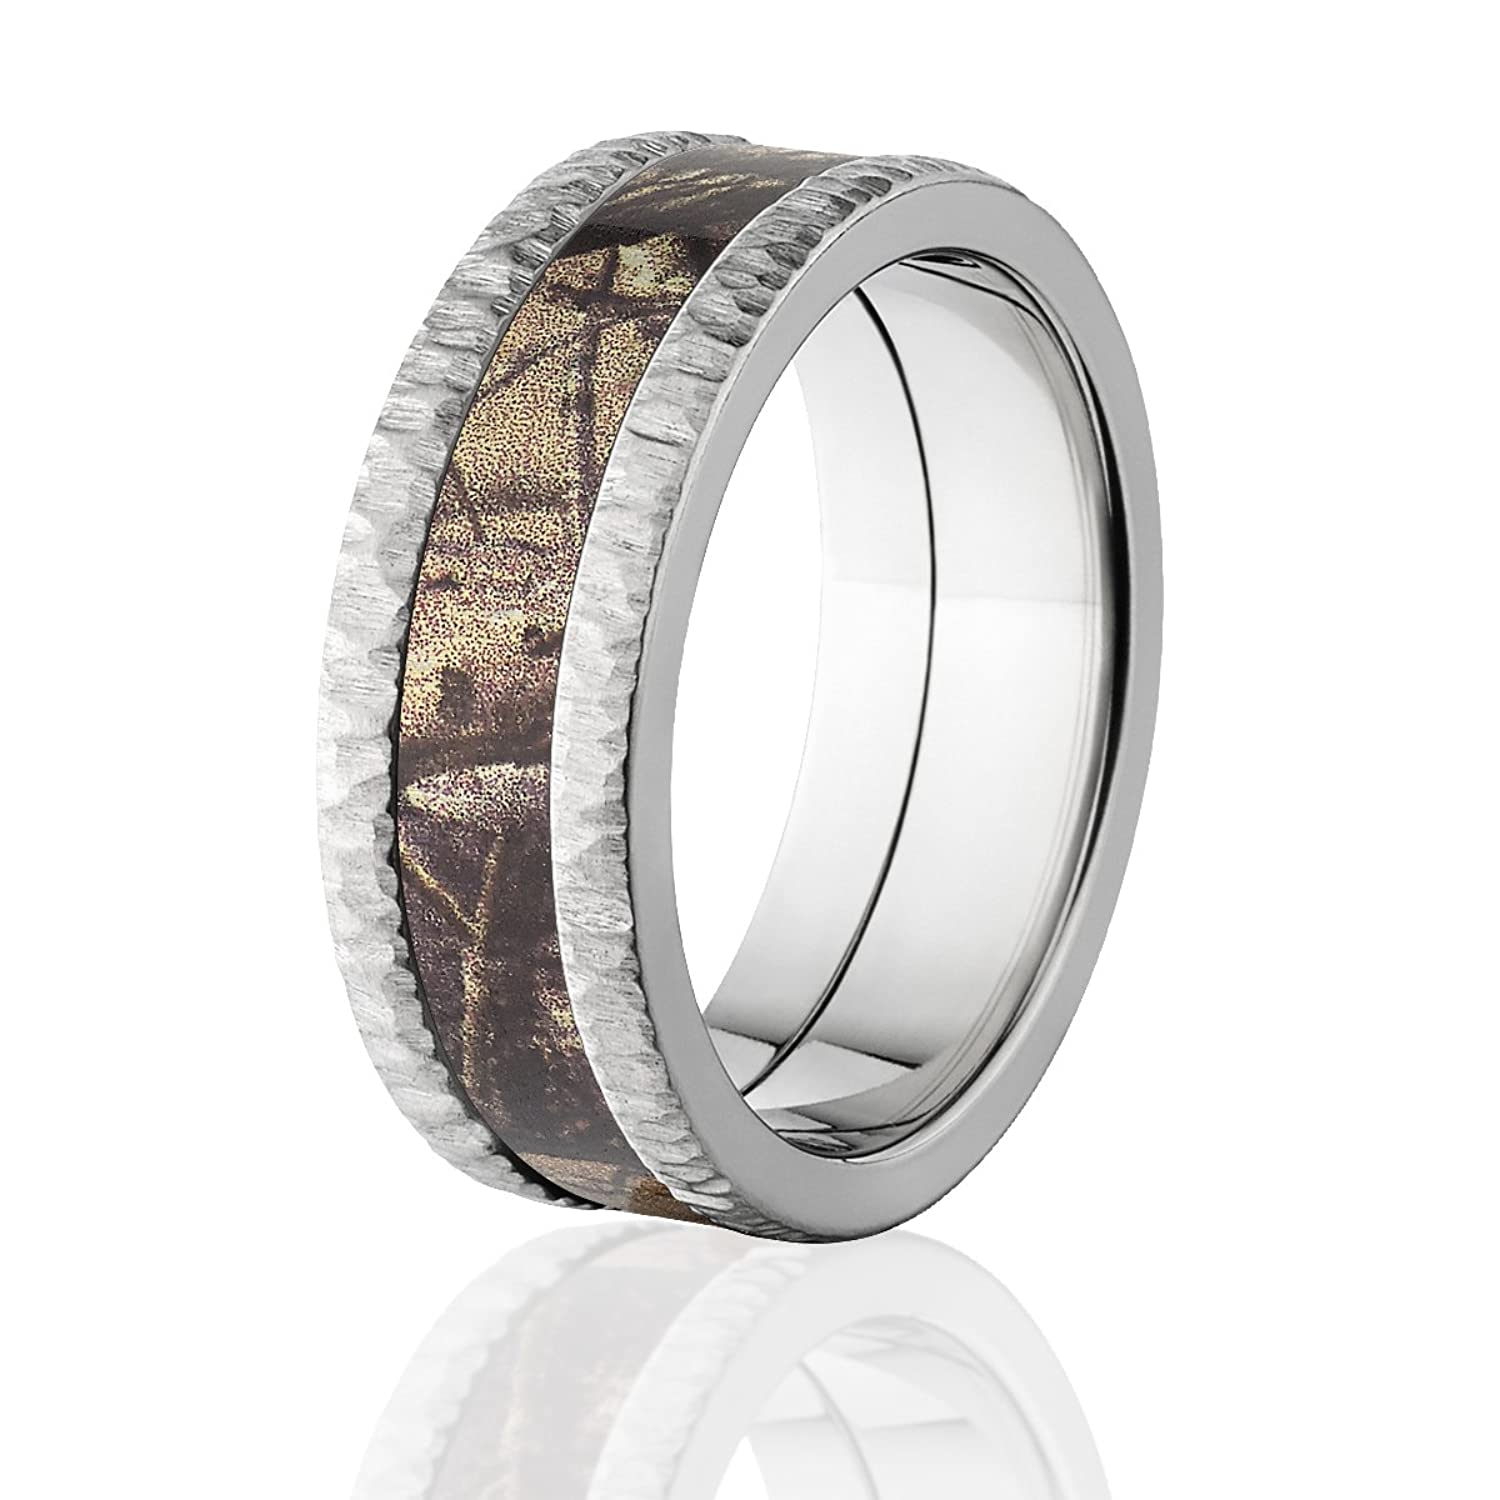 realtree ap camo bands tree bark camouflage wedding ring camo rings amazoncom - Camo Wedding Rings For Him